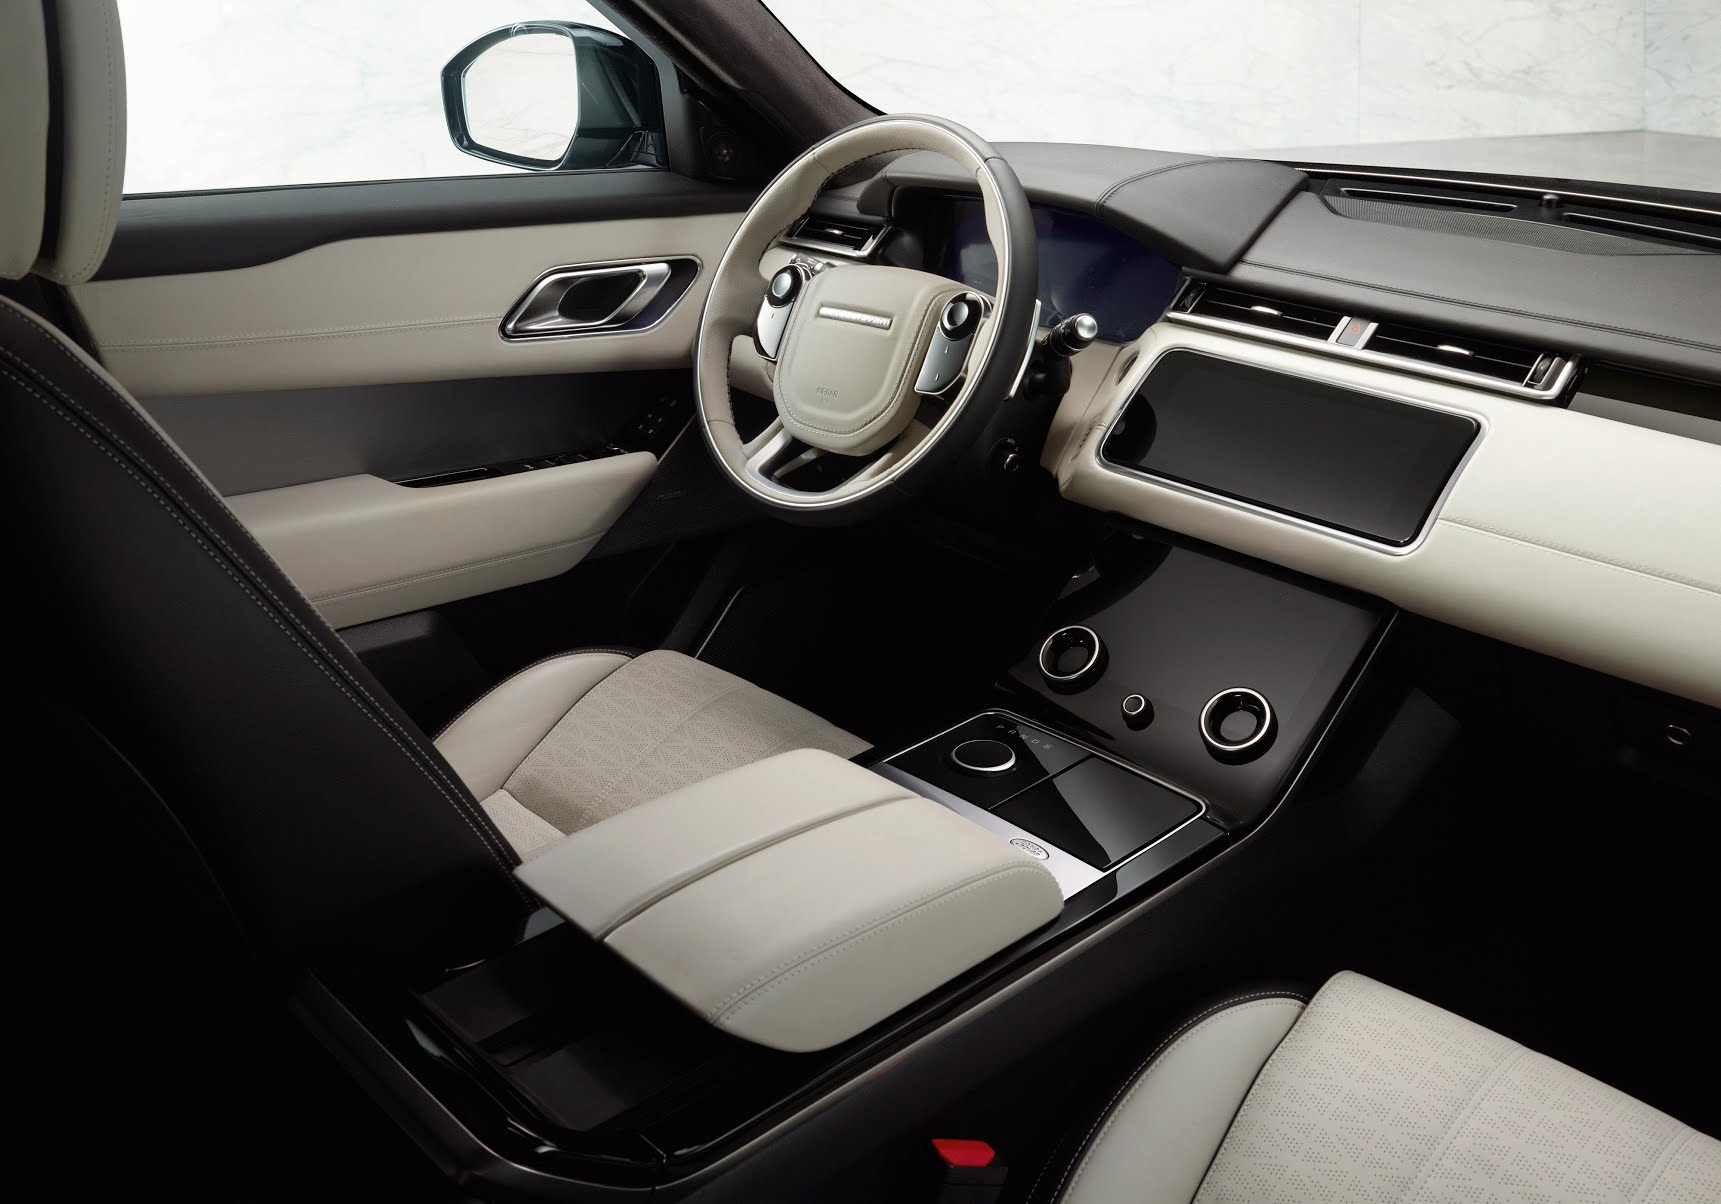 The car's interior includes two 10'' high definition touchscreens